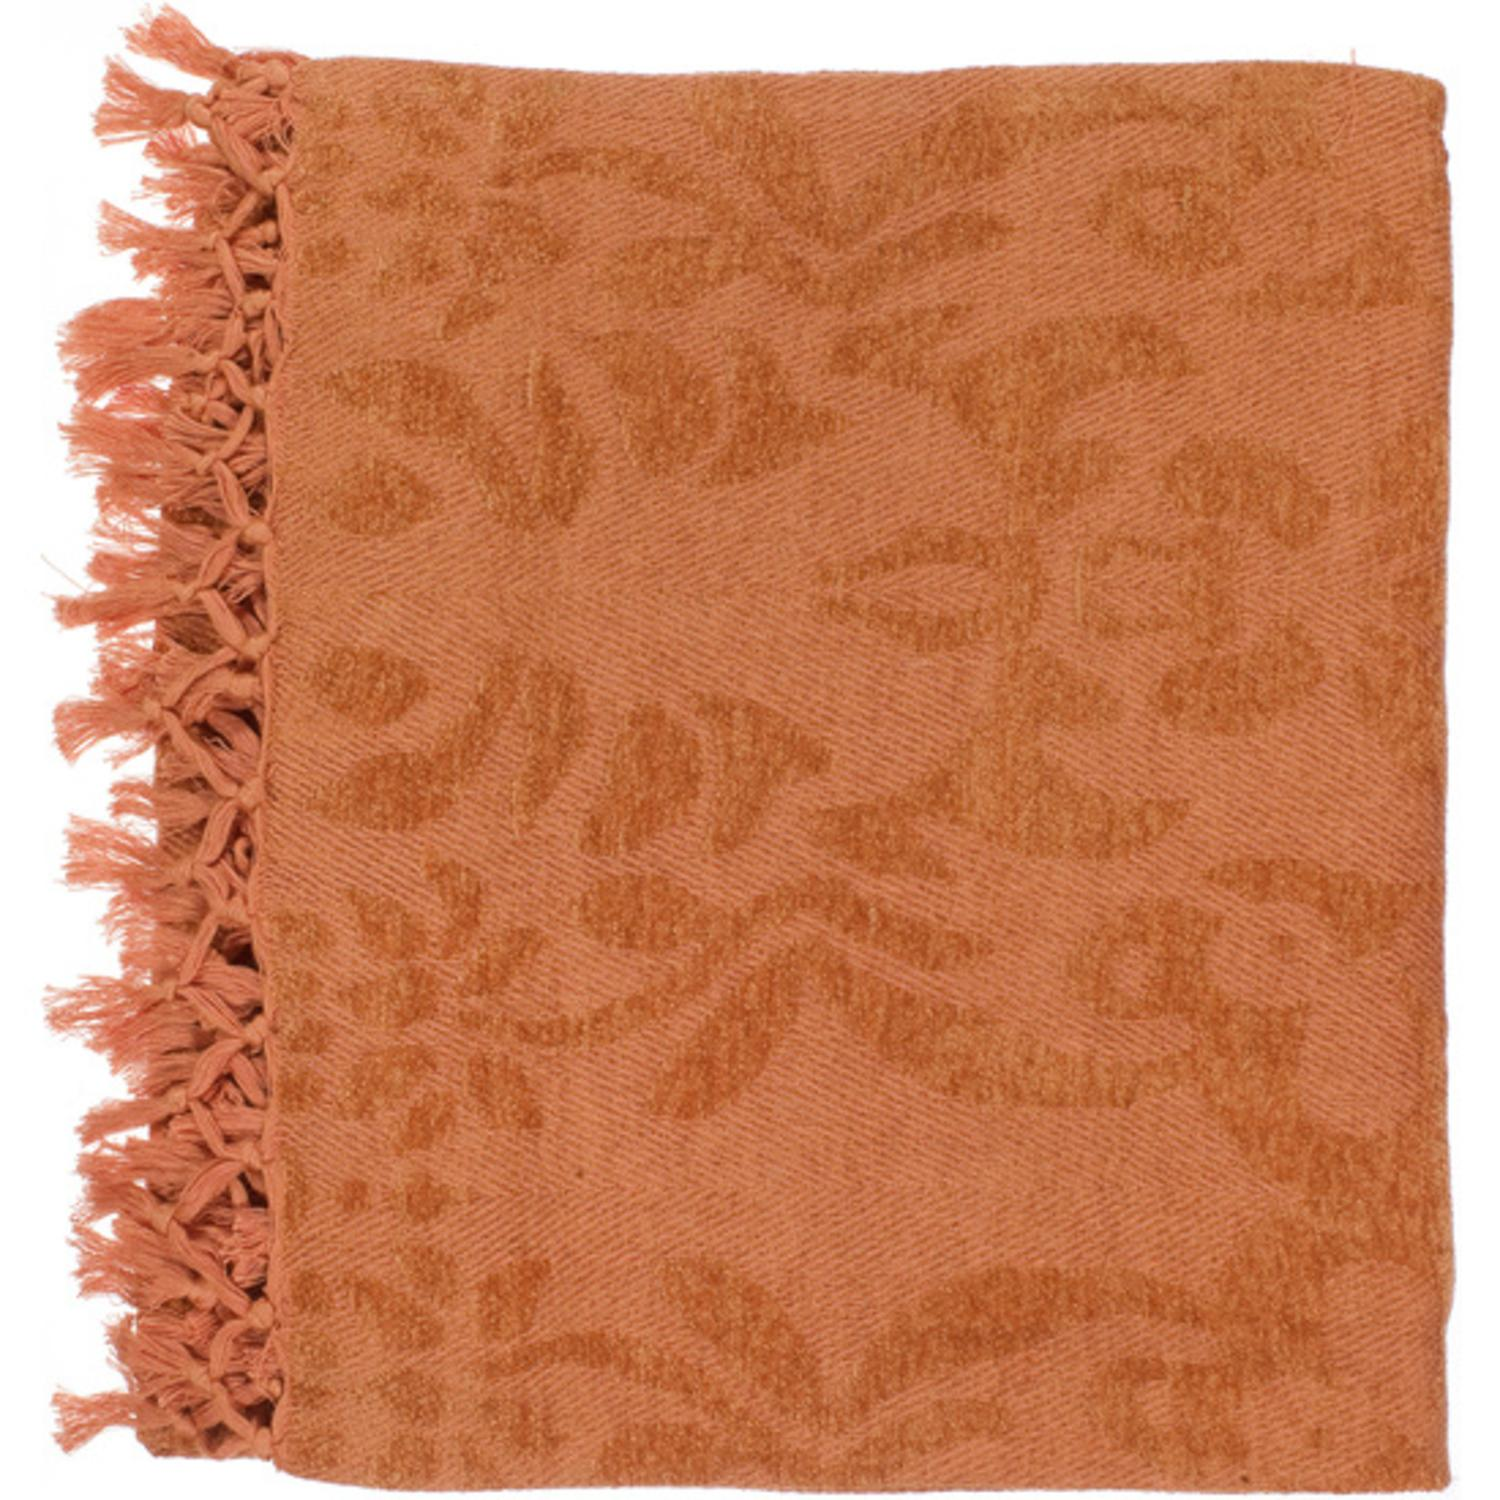 "50"" x 70"" Floral Scroll Orange Spice Viscose Throw Blanket"